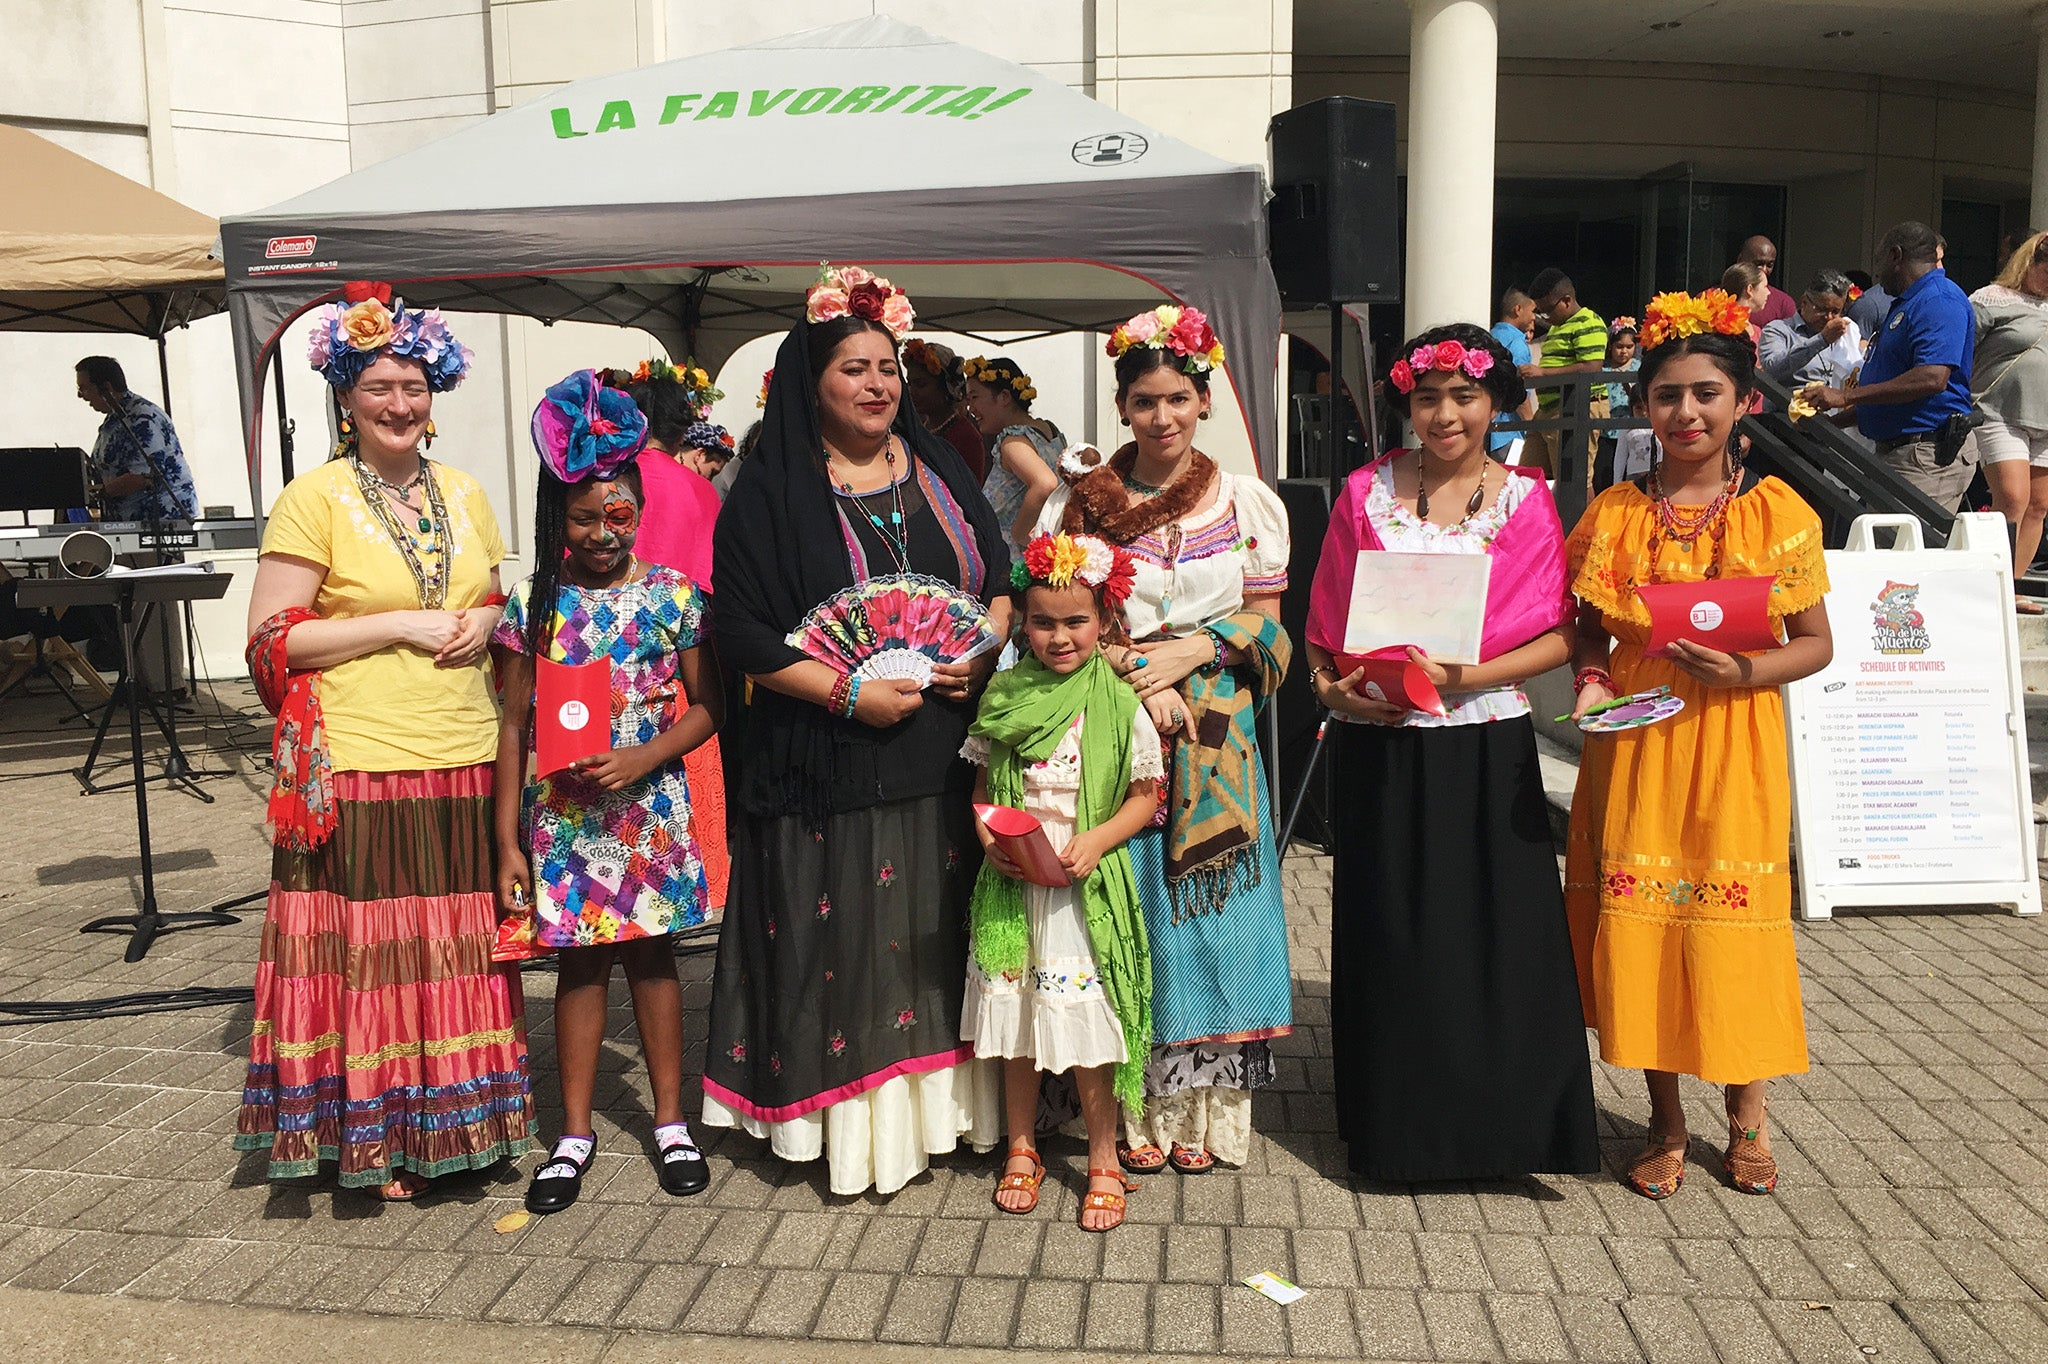 ShopMucho owner dresses as Frida Kahlo and attends the Day of the Dead festival, parade, and Frida Kahlo look a like contest